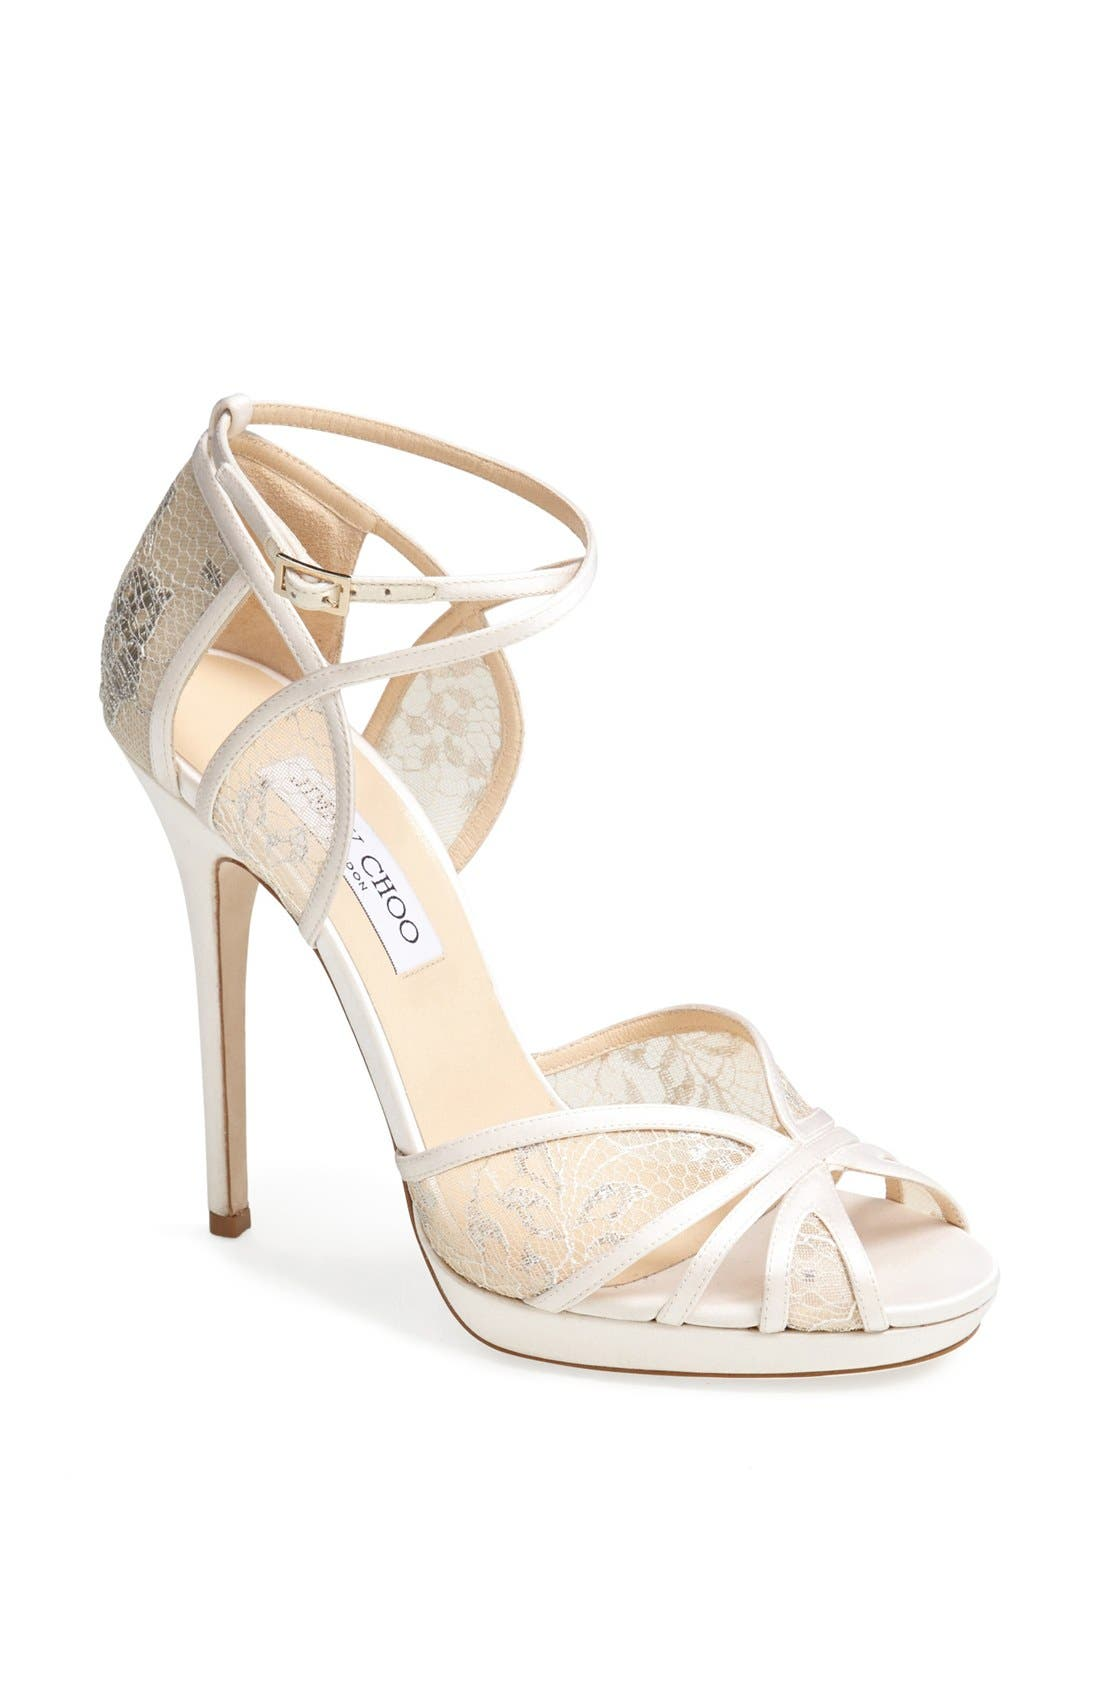 Alternate Image 1 Selected - Jimmy Choo 'Fayme' Lace Platform Sandal